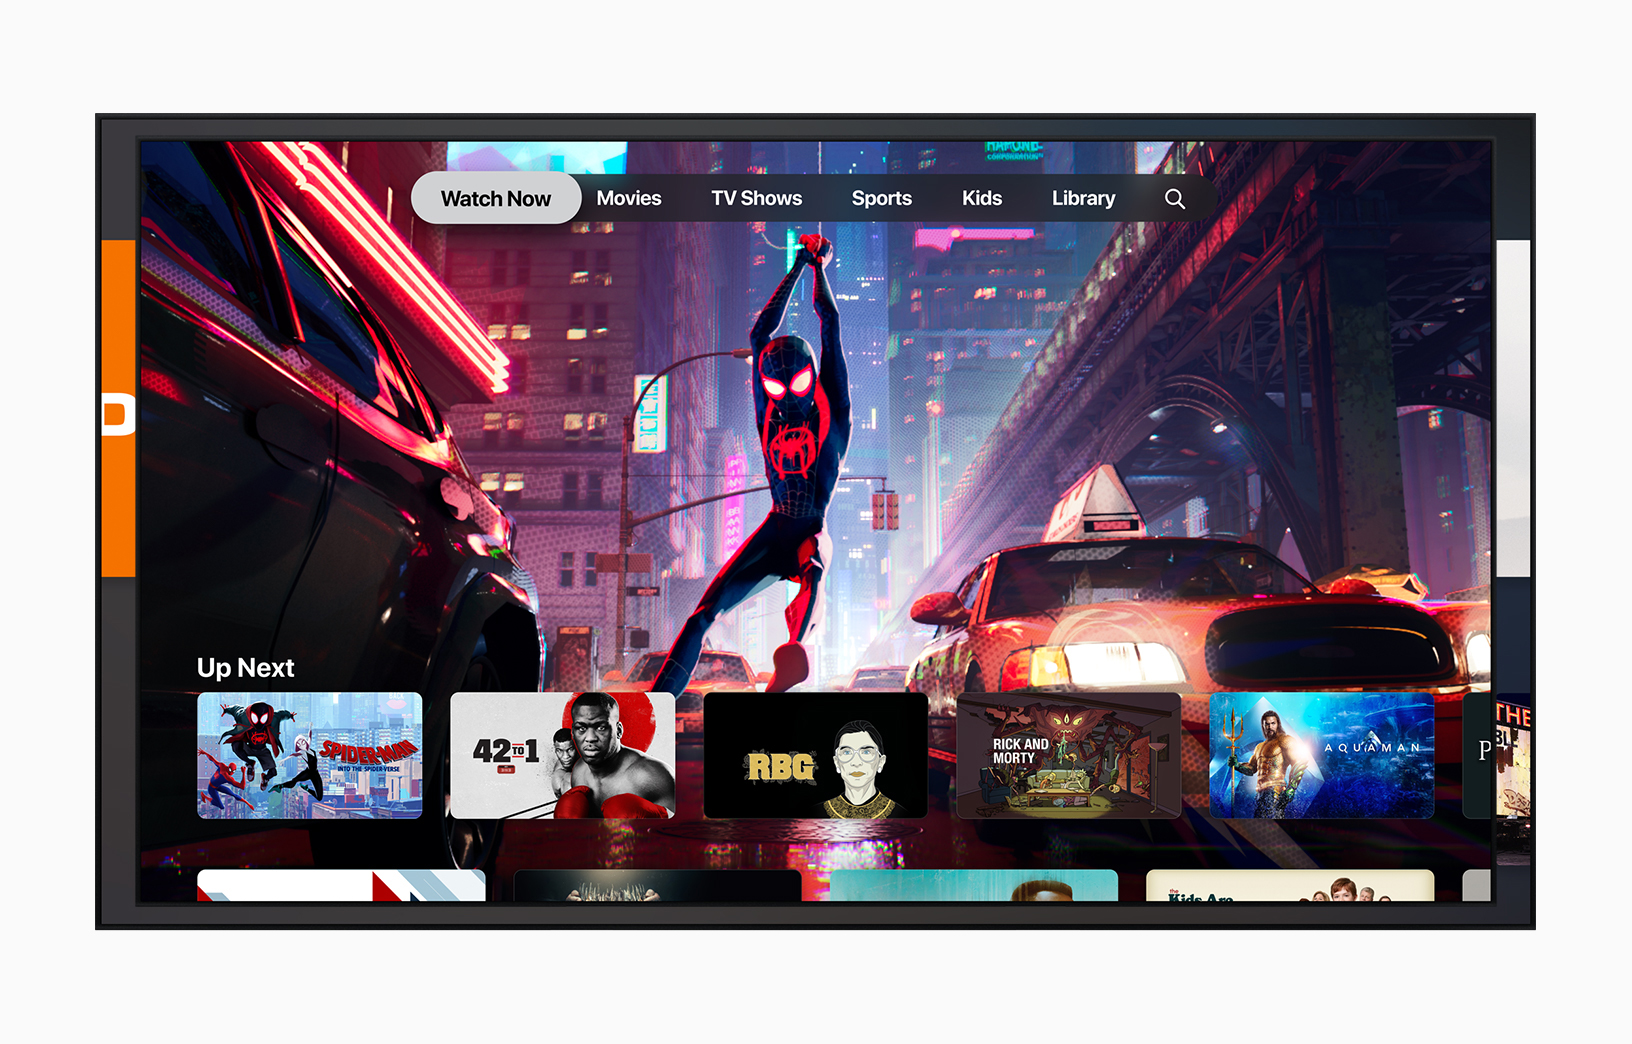 Apple Arcade officially unveiled as a gaming subscription across Apple devices